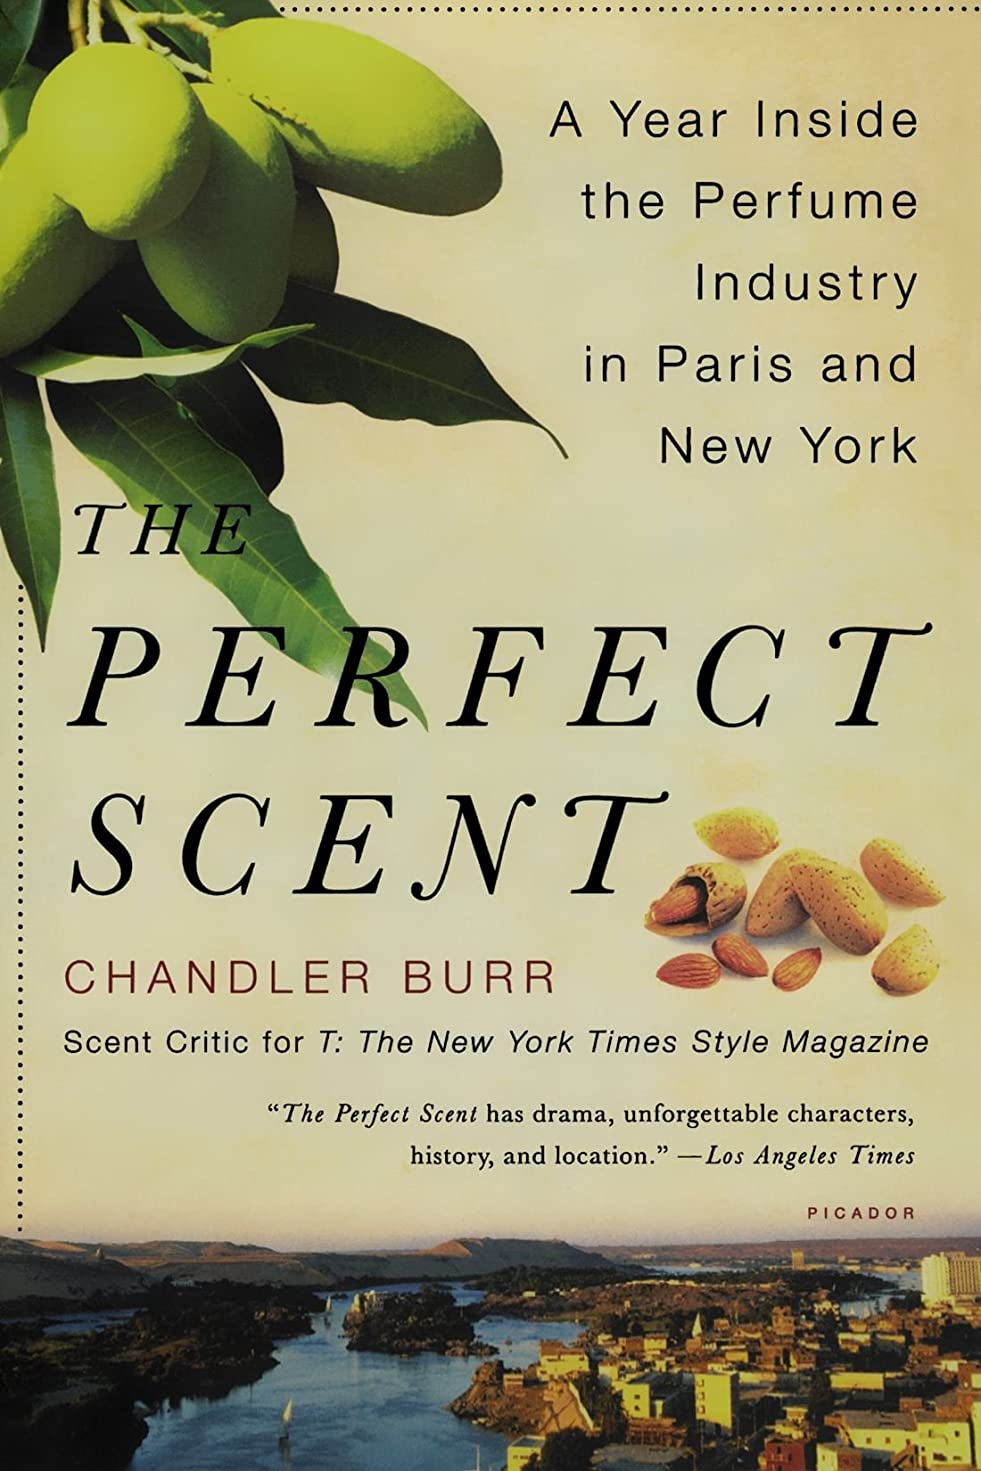 変わるバケツ倍増The Perfect Scent: A Year Inside the Perfume Industry in Paris and New York